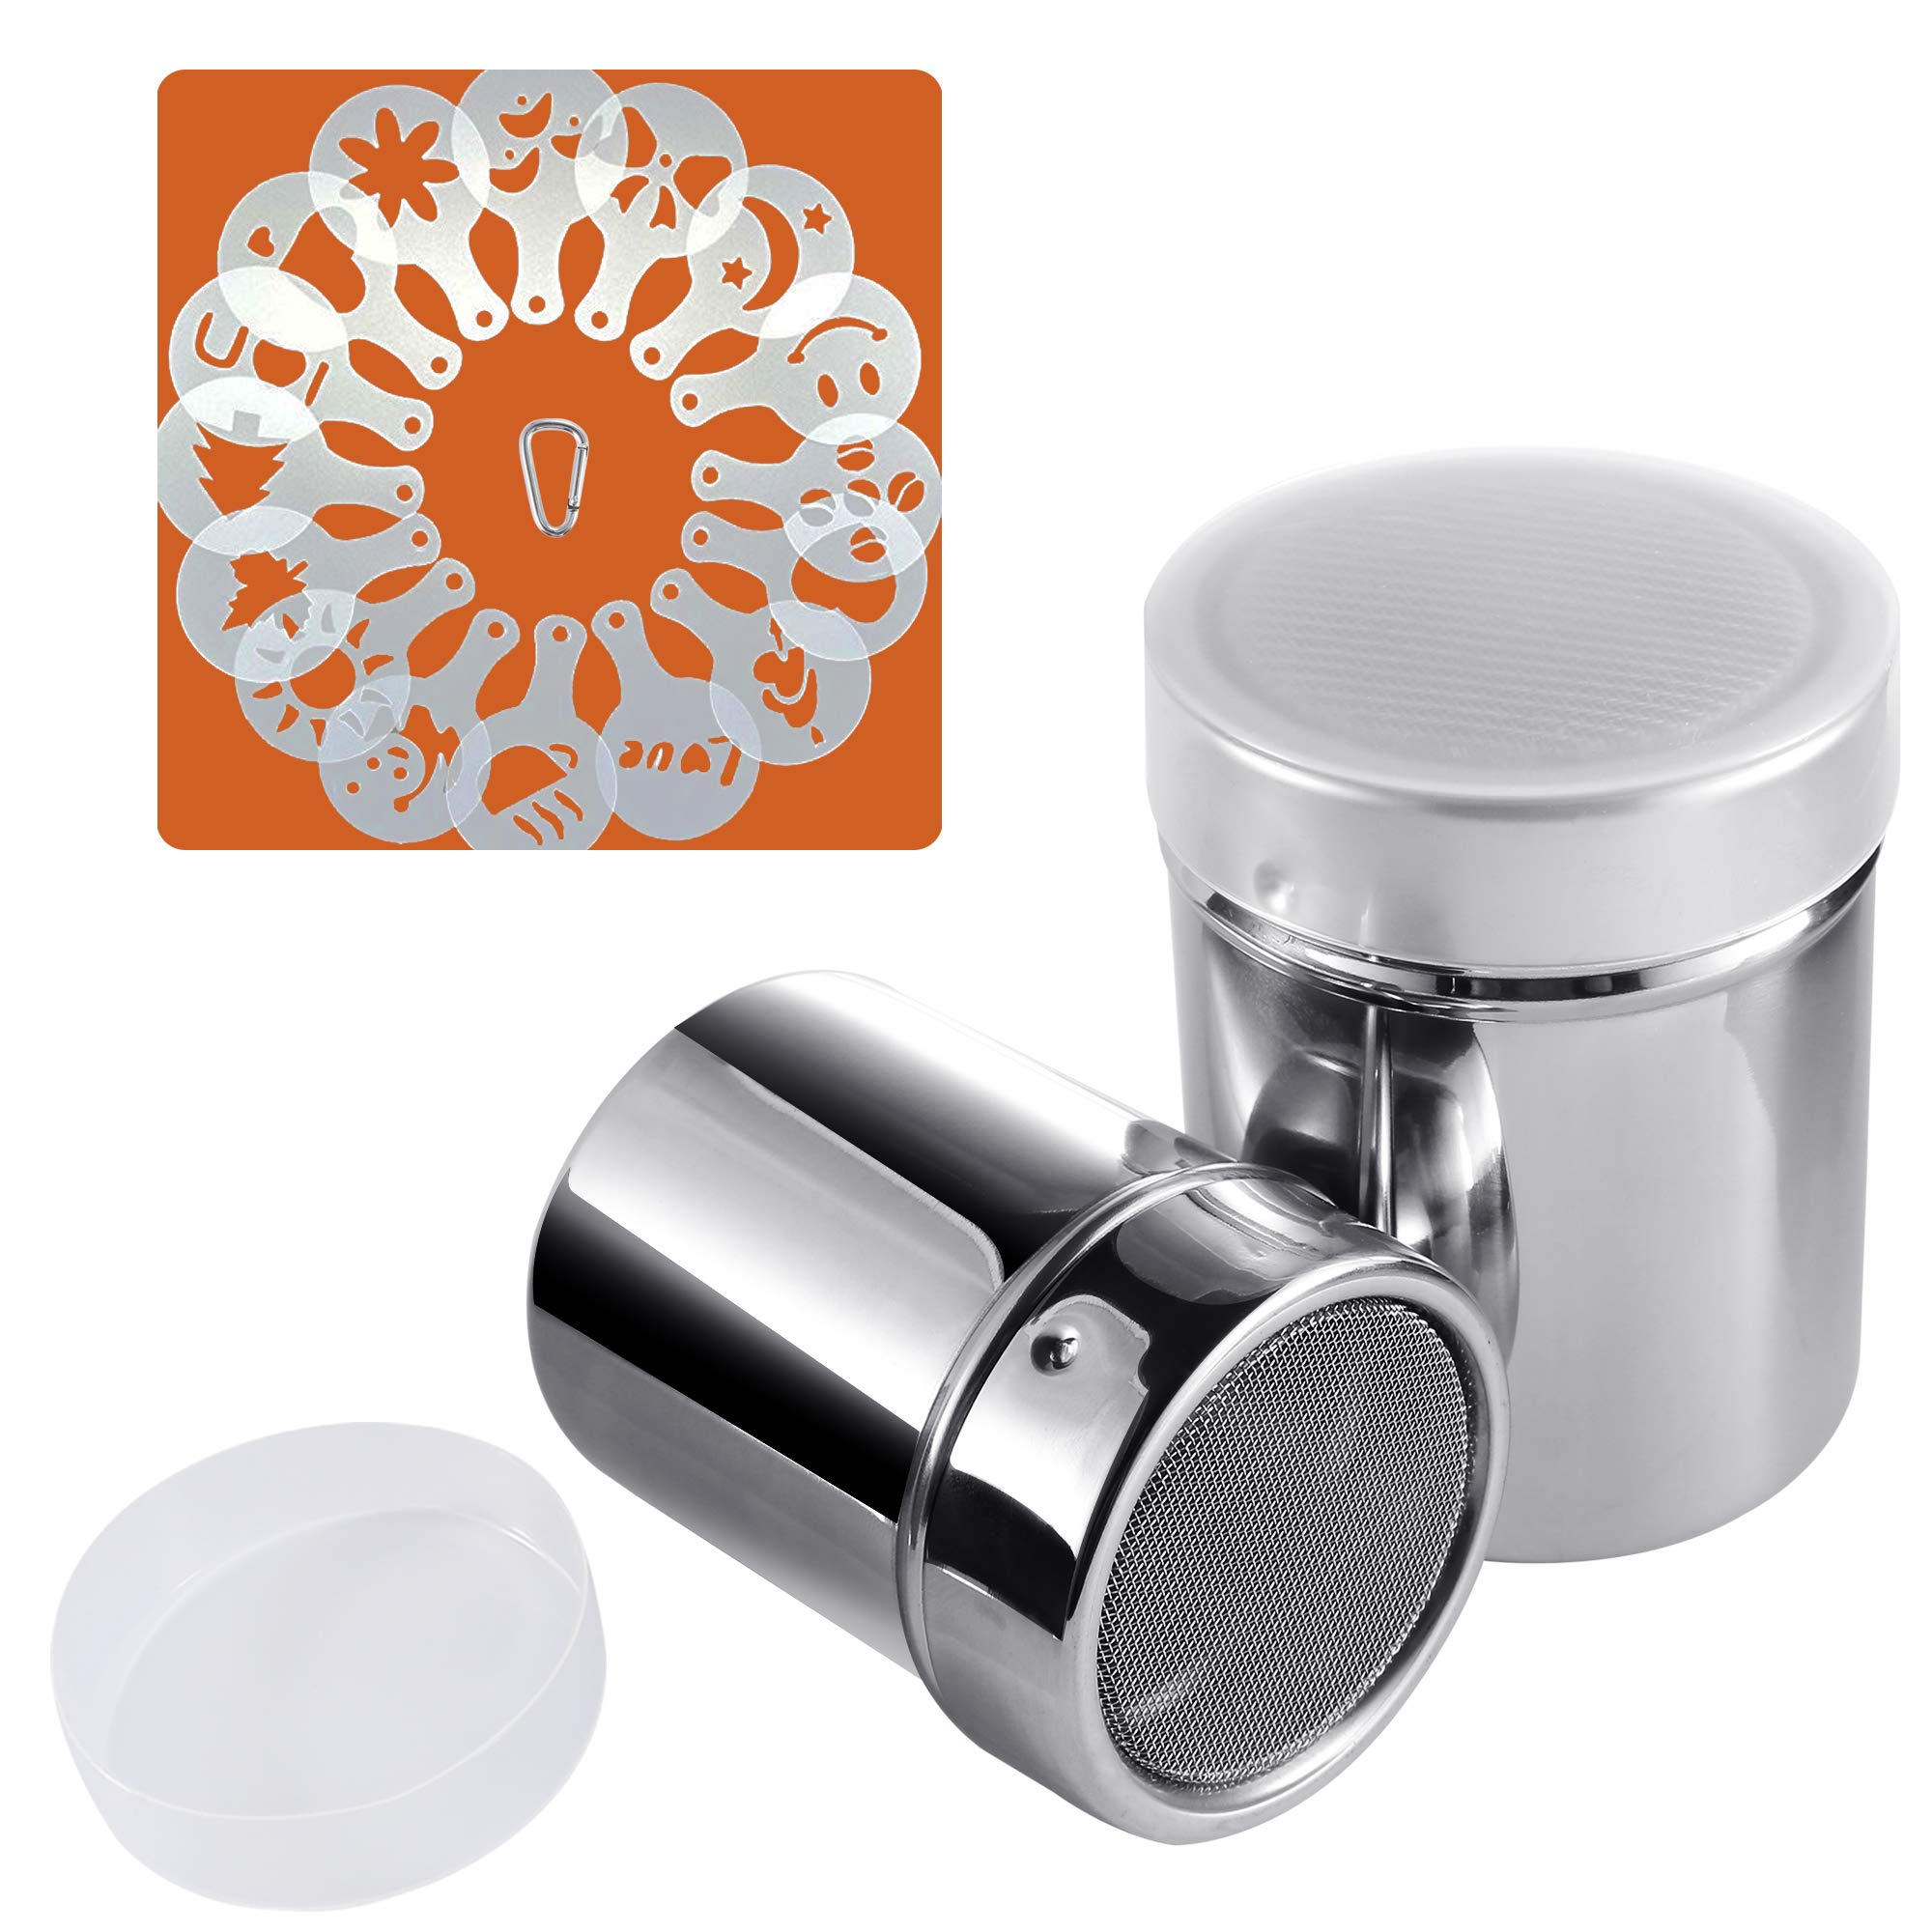 Powder Sugar Shaker with Lid, SOSMAR 2 Sizes 18/8 Stainless Steel Cocoa Cinnamon Mesh Sifter/Sprinkler/Dredgers for Coffee Cappuccino Latte, 16 Pcs Coffee Stencils Template & Clip by SOSMAR